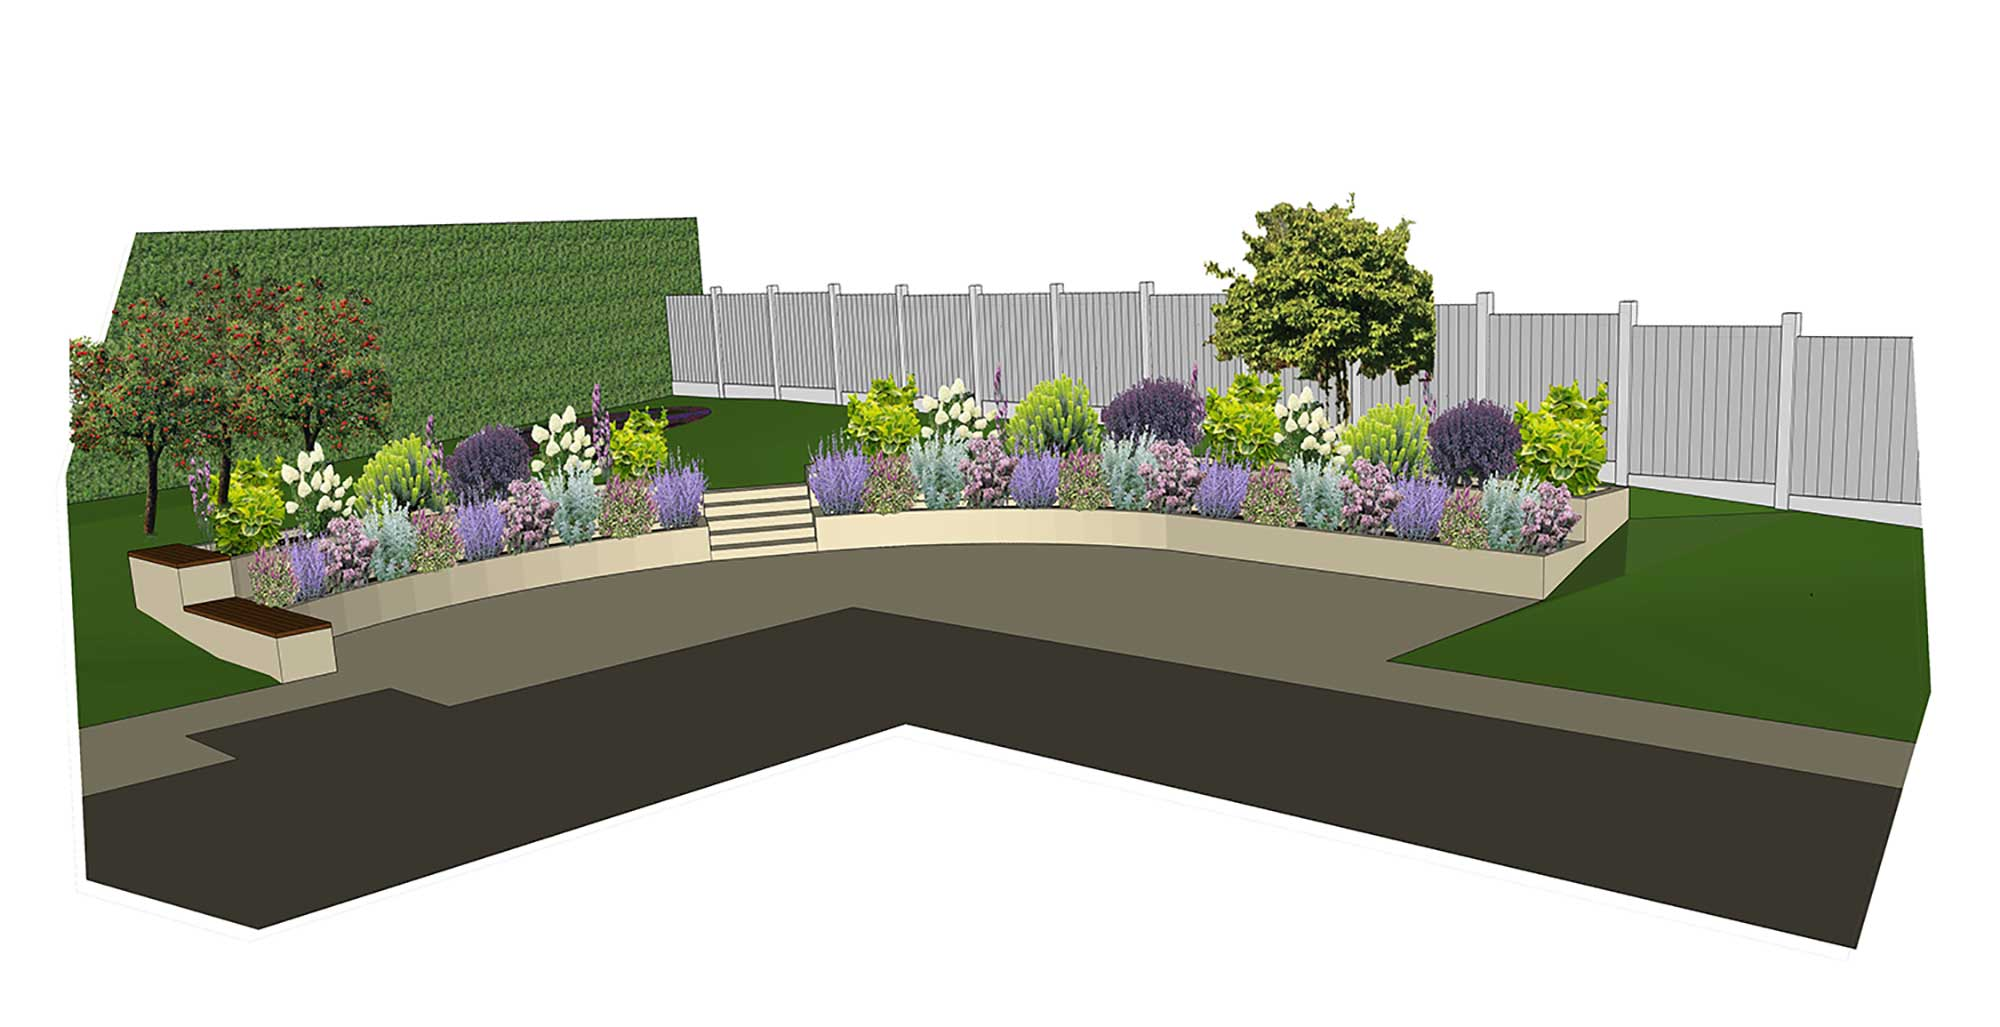 Garden designs and layouts uk large image of suzie nichols for How to design garden layout